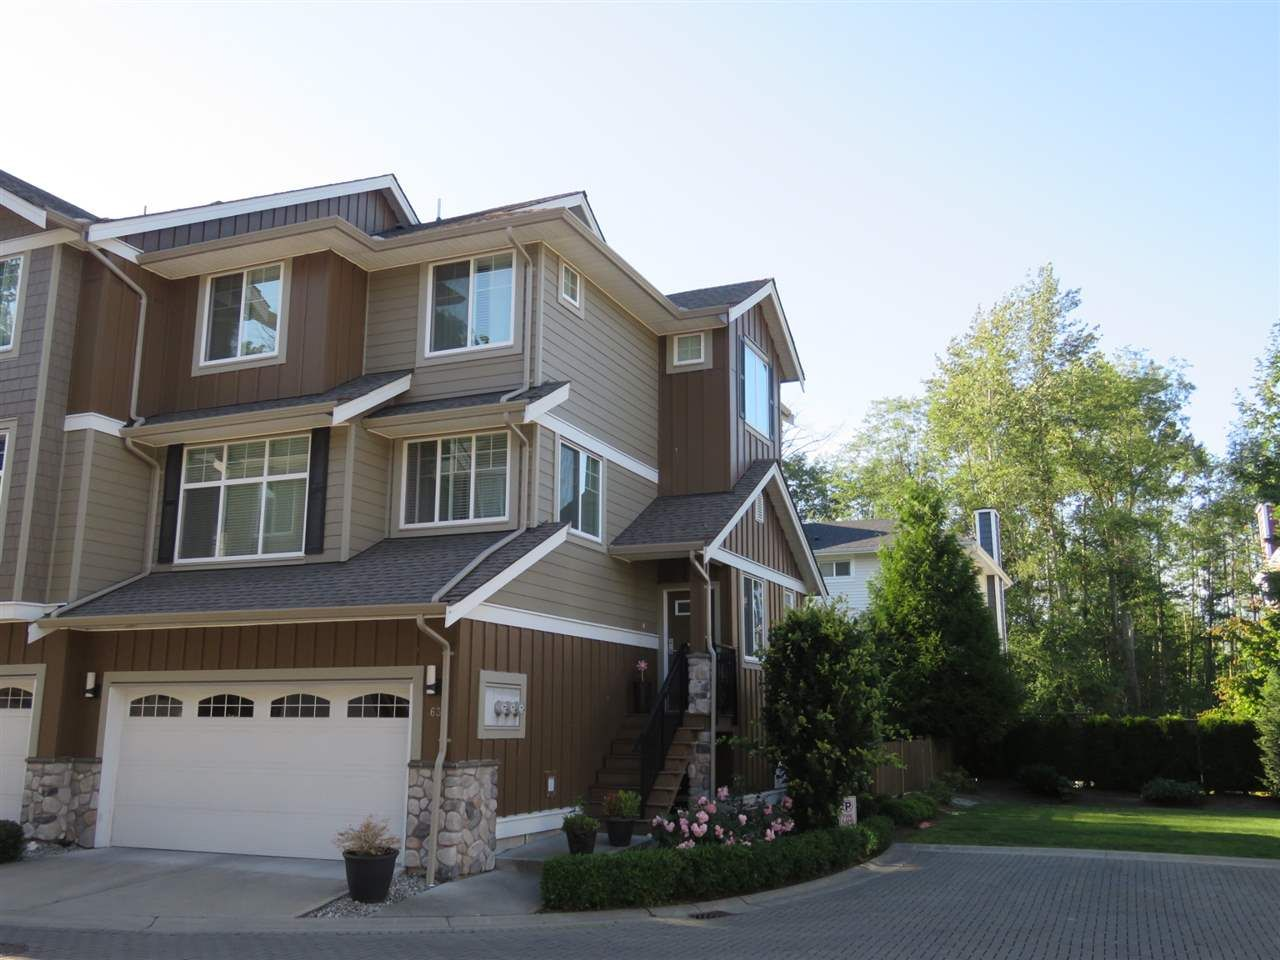 """Main Photo: 63 3009 156 Street in Surrey: Grandview Surrey Townhouse for sale in """"KALISTO"""" (South Surrey White Rock)  : MLS®# R2182367"""